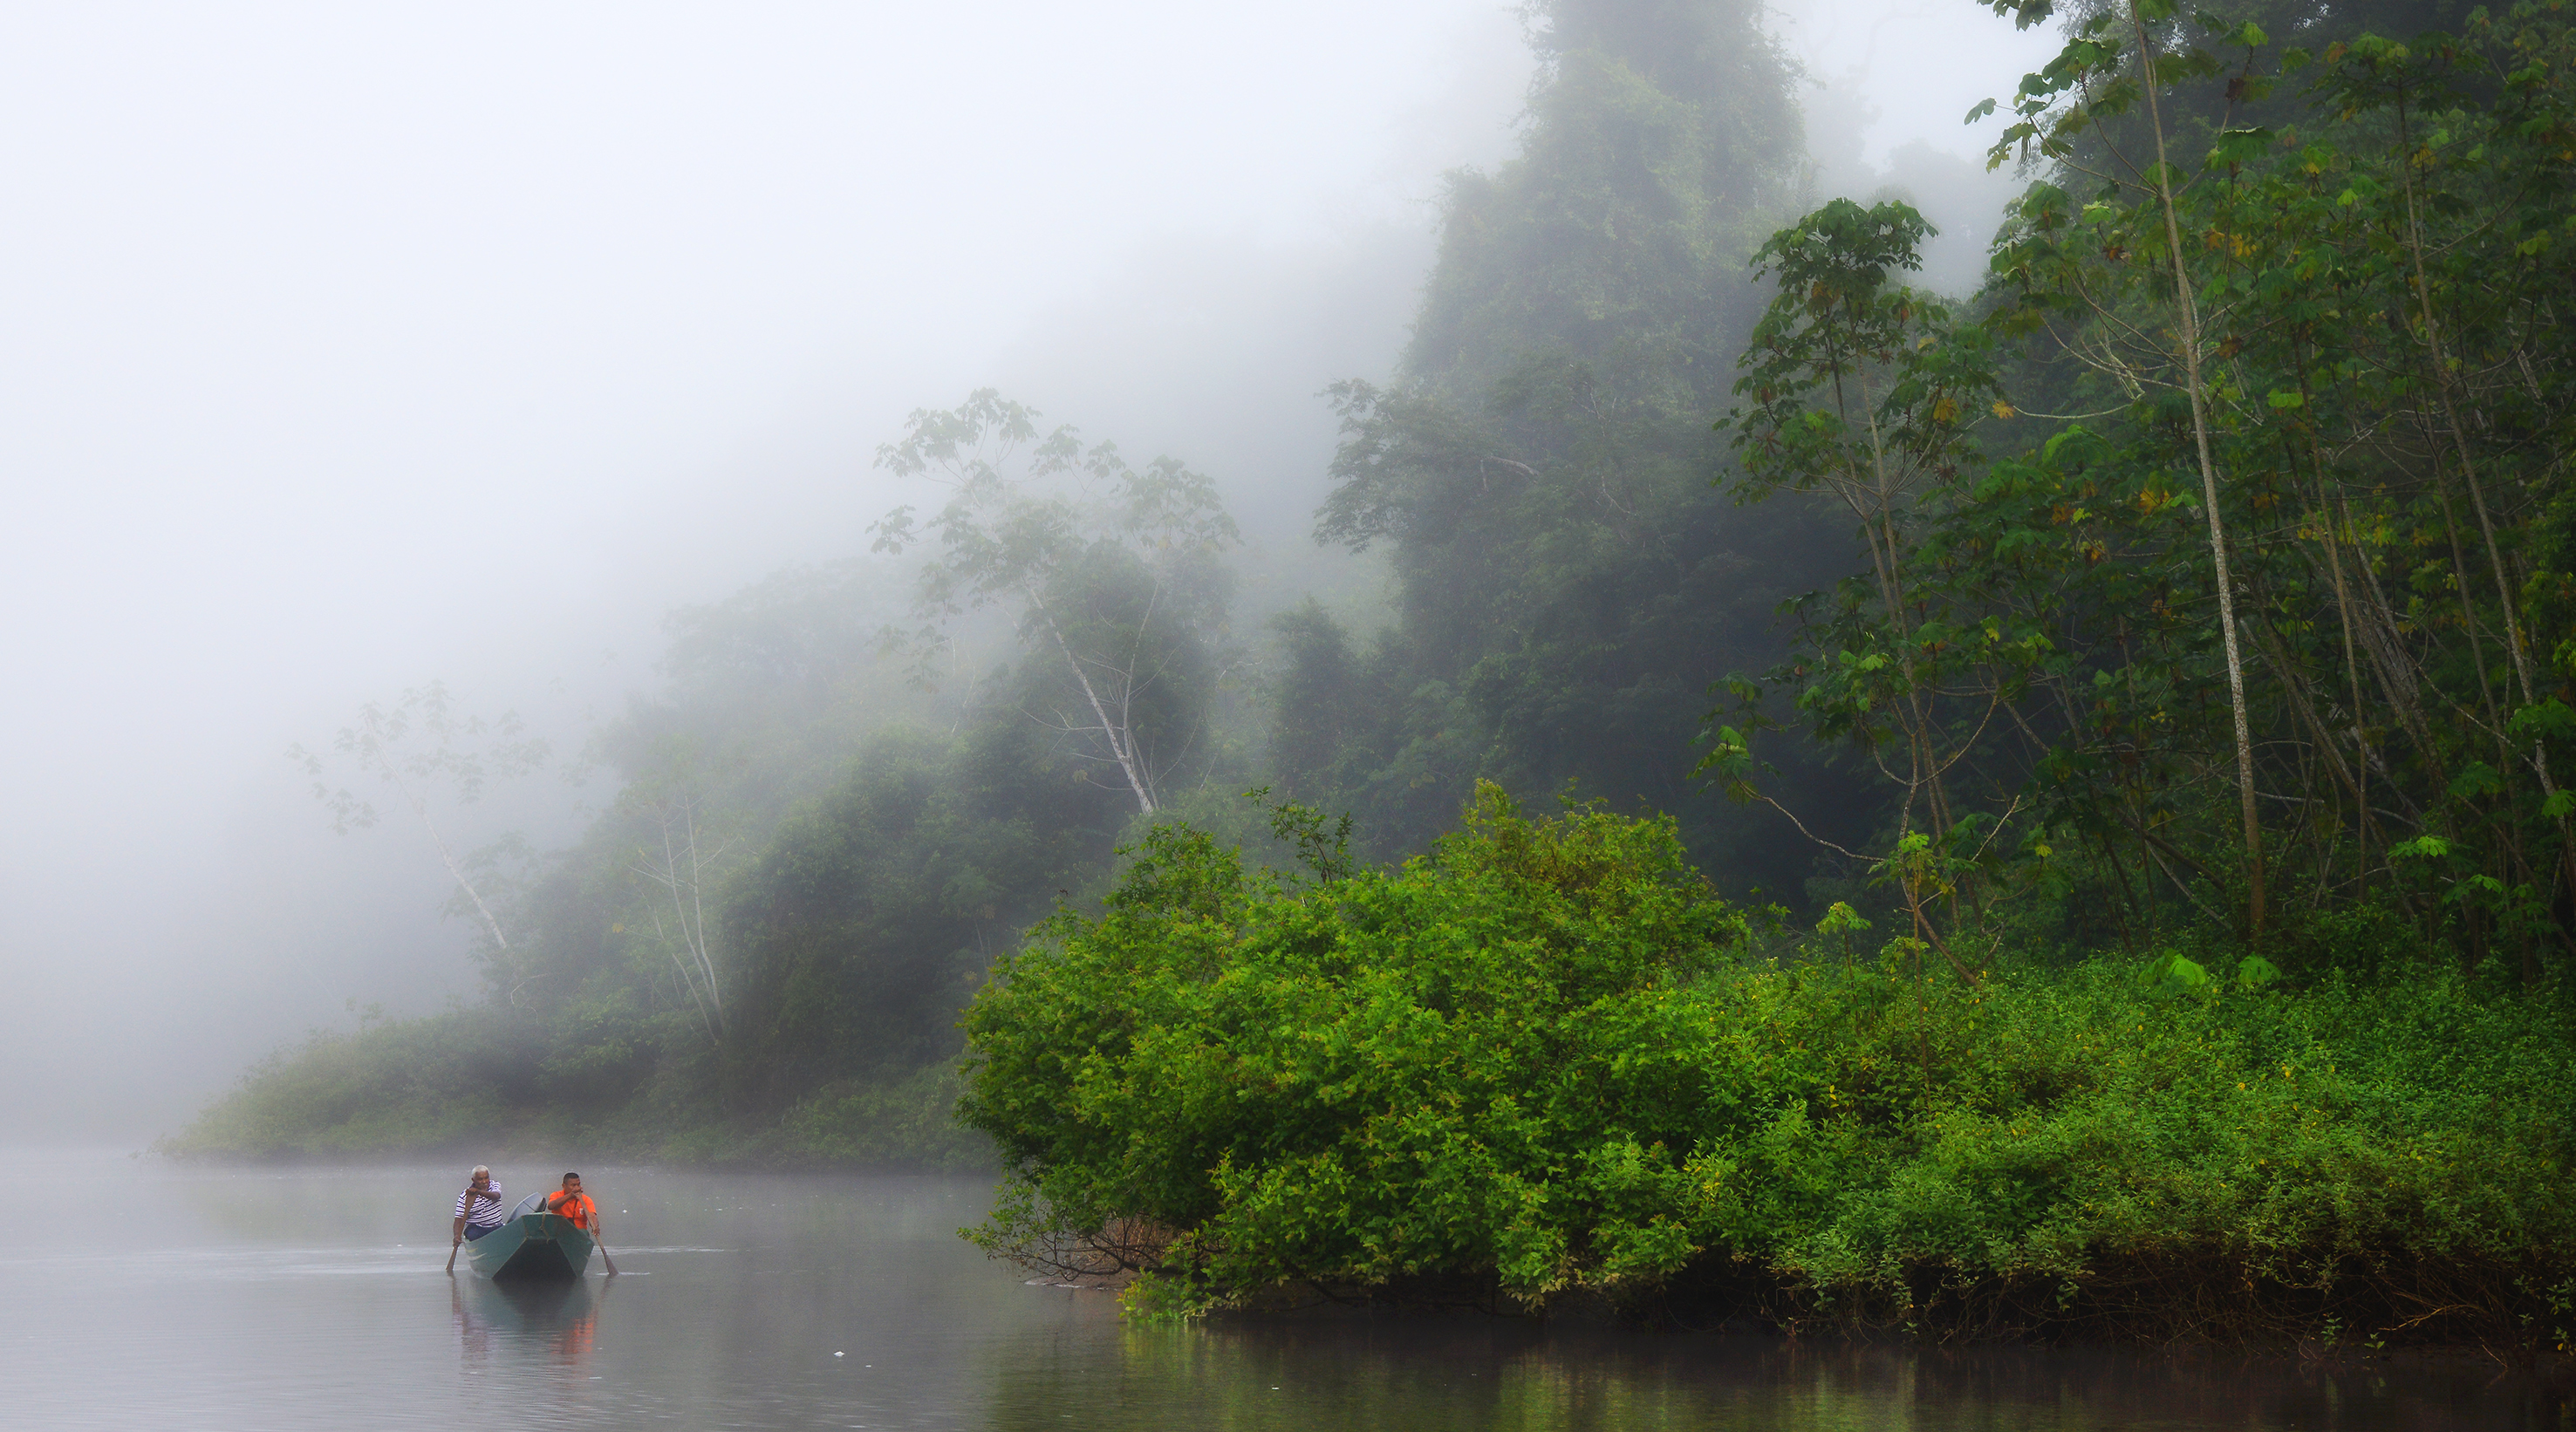 On assignment in the primary rainforest of Suriname